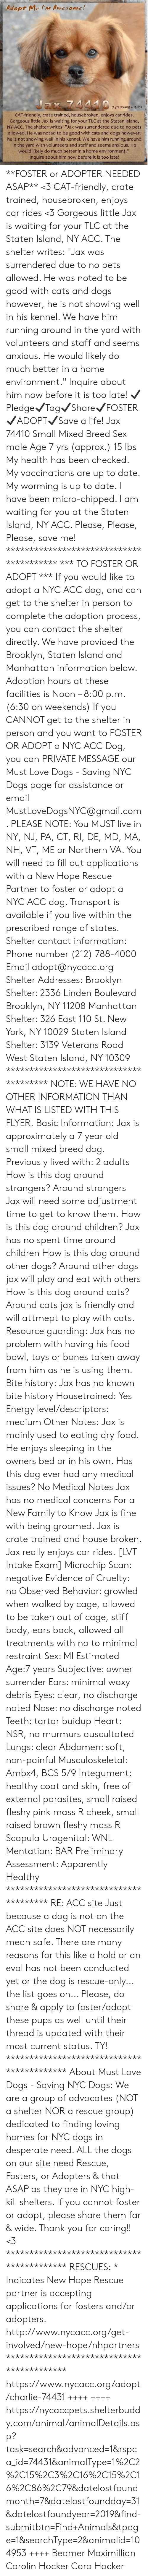 """Mentation: Adopt Me I'm Awesome!  Jax 74410  7 yrs young +15 lbs  CAT-friendly, crate trained, housebroken, enjoys car rides.  Gorgeous little Jax is waiting for your TLC at the Staten Island,  NY ACC. The shelter writes: """"Jax was surrendered due to no pets  allowed. He was noted to be good with cats and dogs however,  he is not showing well in his kennel. We have him running around  in the yard with volunteers and staff and seems anxious. He  would likely do much better in a home environment.""""  Inquire about him now before it is too late! **FOSTER or ADOPTER NEEDED ASAP** <3 CAT-friendly, crate trained, housebroken, enjoys car rides <3 Gorgeous little Jax is waiting for your TLC at the Staten Island, NY ACC. The shelter writes: """"Jax was surrendered due to no pets allowed. He was noted to be good with cats and dogs however, he is not showing well in his kennel. We have him running around in the yard with volunteers and staff and seems anxious. He would likely do much better in a home environment."""" Inquire about him now before it is too late!  ✔Pledge✔Tag✔Share✔FOSTER✔ADOPT✔Save a life!  Jax 74410 Small Mixed Breed Sex male Age 7 yrs (approx.) 15 lbs  My health has been checked.  My vaccinations are up to date. My worming is up to date.  I have been micro-chipped.   I am waiting for you at the Staten Island, NY ACC.  Please, Please, Please, save me!  **************************************** *** TO FOSTER OR ADOPT ***   If you would like to adopt a NYC ACC dog, and can get to the shelter in person to complete the adoption process, you can contact the shelter directly. We have provided the Brooklyn, Staten Island and Manhattan information below. Adoption hours at these facilities is Noon – 8:00 p.m. (6:30 on weekends)  If you CANNOT get to the shelter in person and you want to FOSTER OR ADOPT a NYC ACC Dog, you can PRIVATE MESSAGE our Must Love Dogs - Saving NYC Dogs page for assistance or email MustLoveDogsNYC@gmail.com.   PLEASE NOTE: You MUST live in NY, NJ, PA, CT,"""